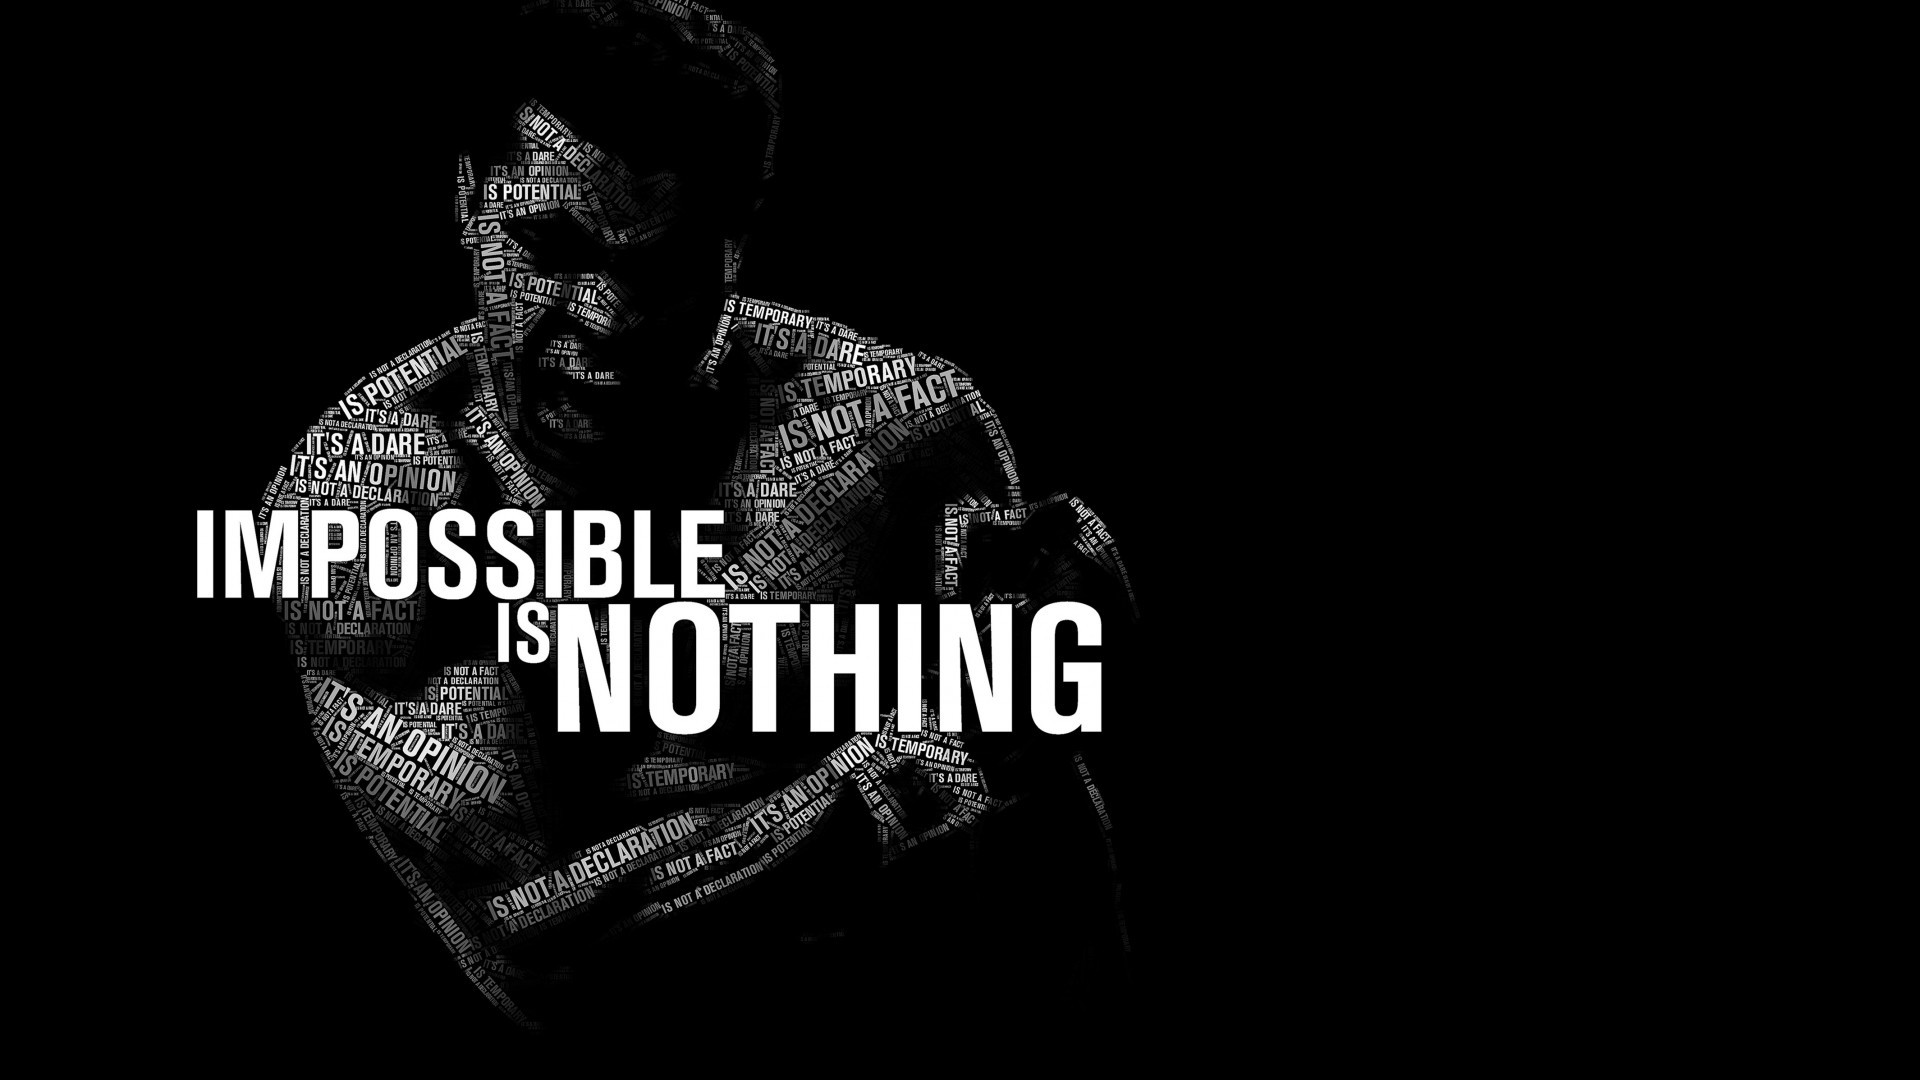 1920x1080 You transcended sports like no other. Ali Bomaye  https://www.hdwallpapers.net/quotes/impossible-is-nothing-muhammad-ali- wallpaper-548.htm